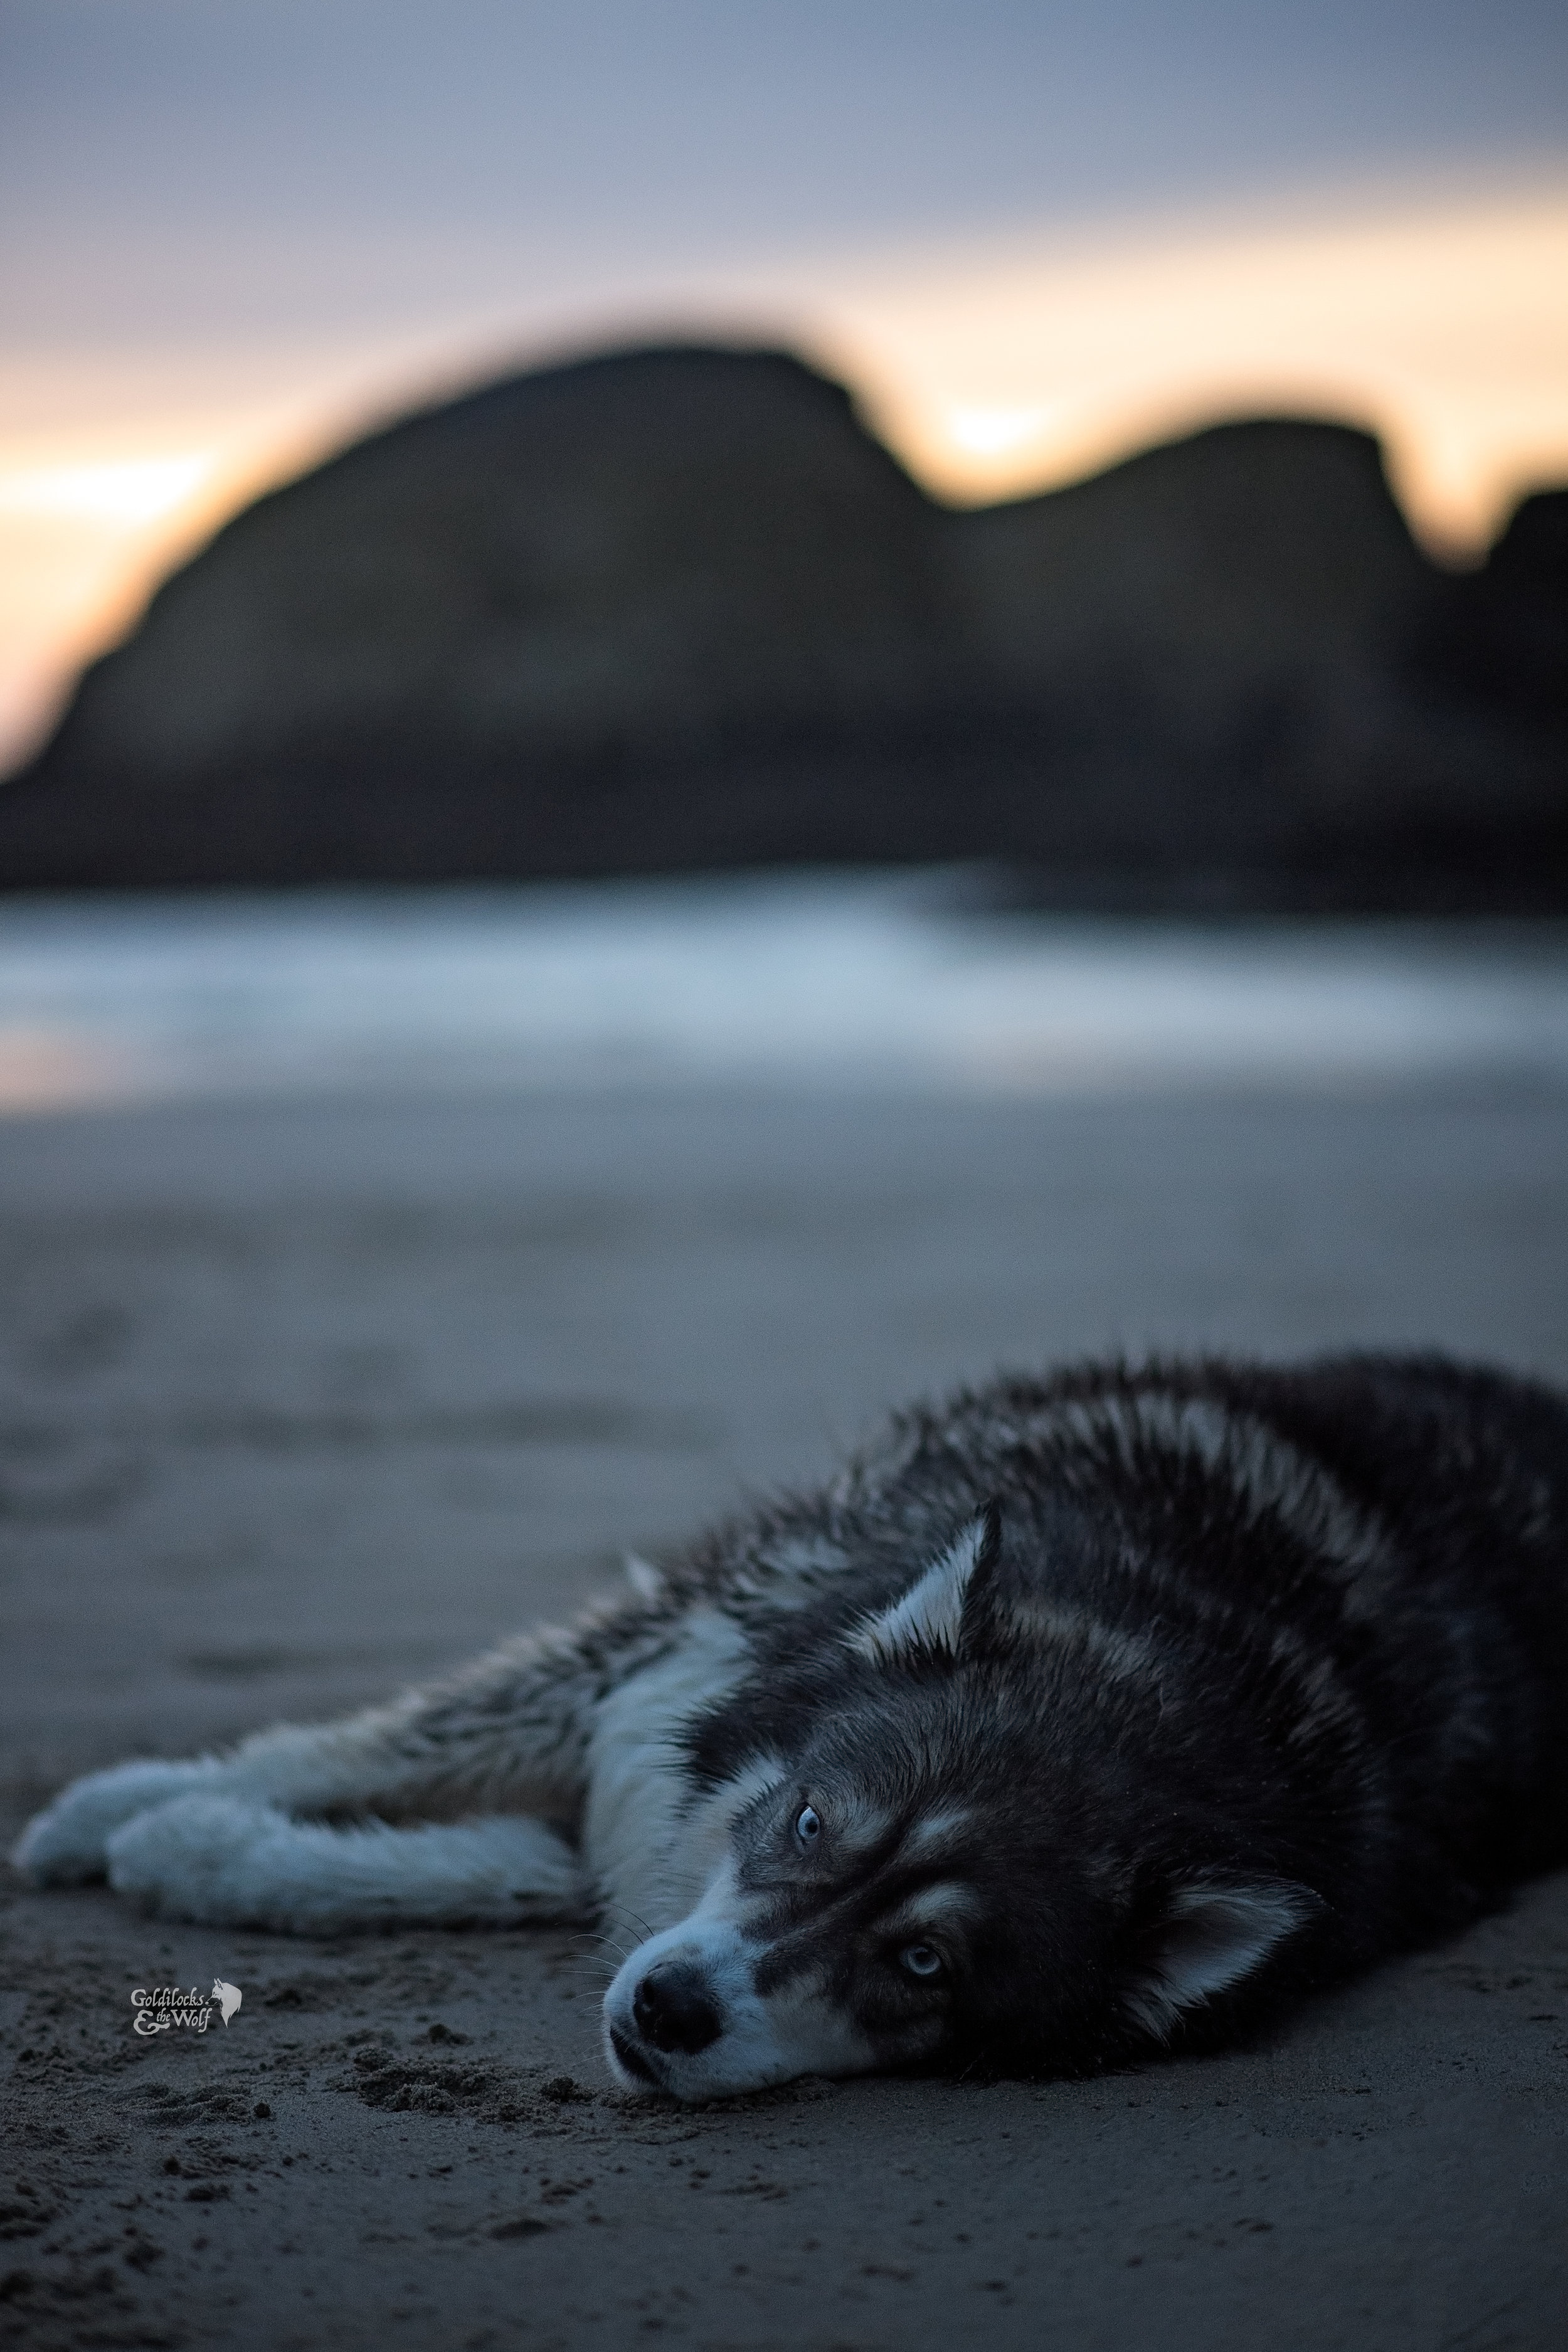 Kyro resting on the beach after a long day of play